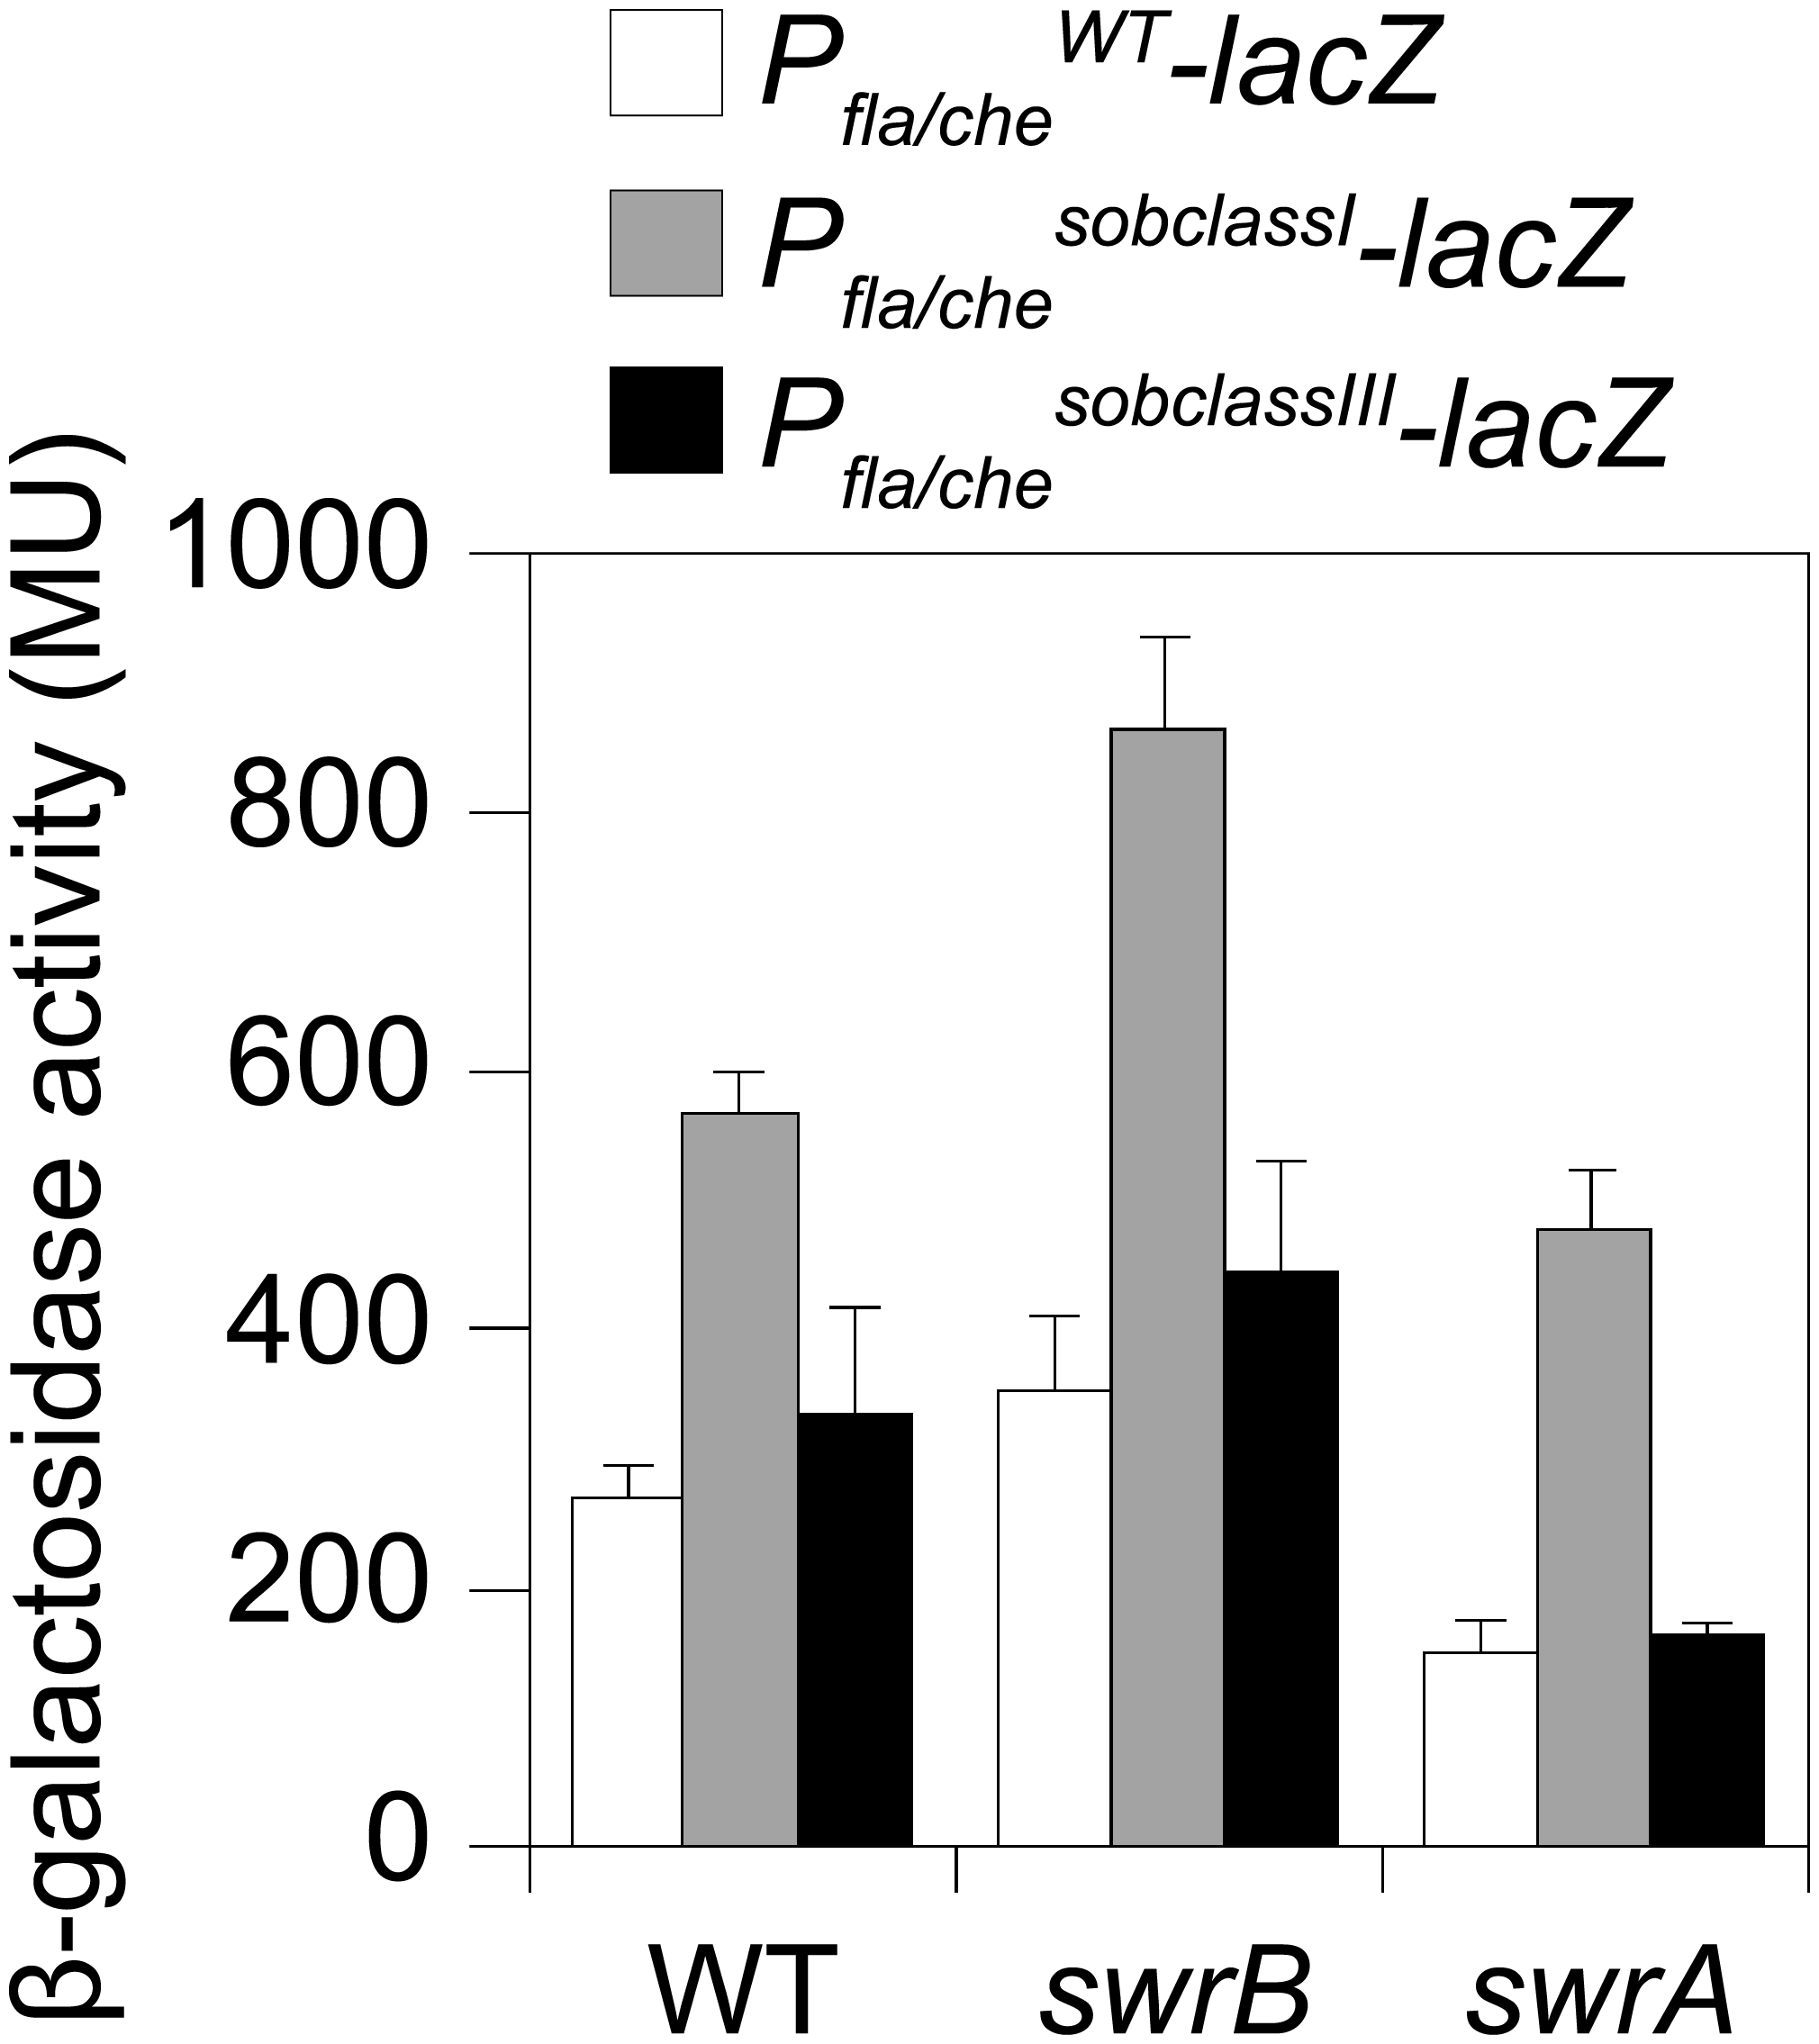 Class I but not Class III <i>sob</i> alleles in the <i>P</i><sub><i>fla/che</i></sub> promoter region increase <i>P</i><sub><i>fla/che</i></sub> expression.